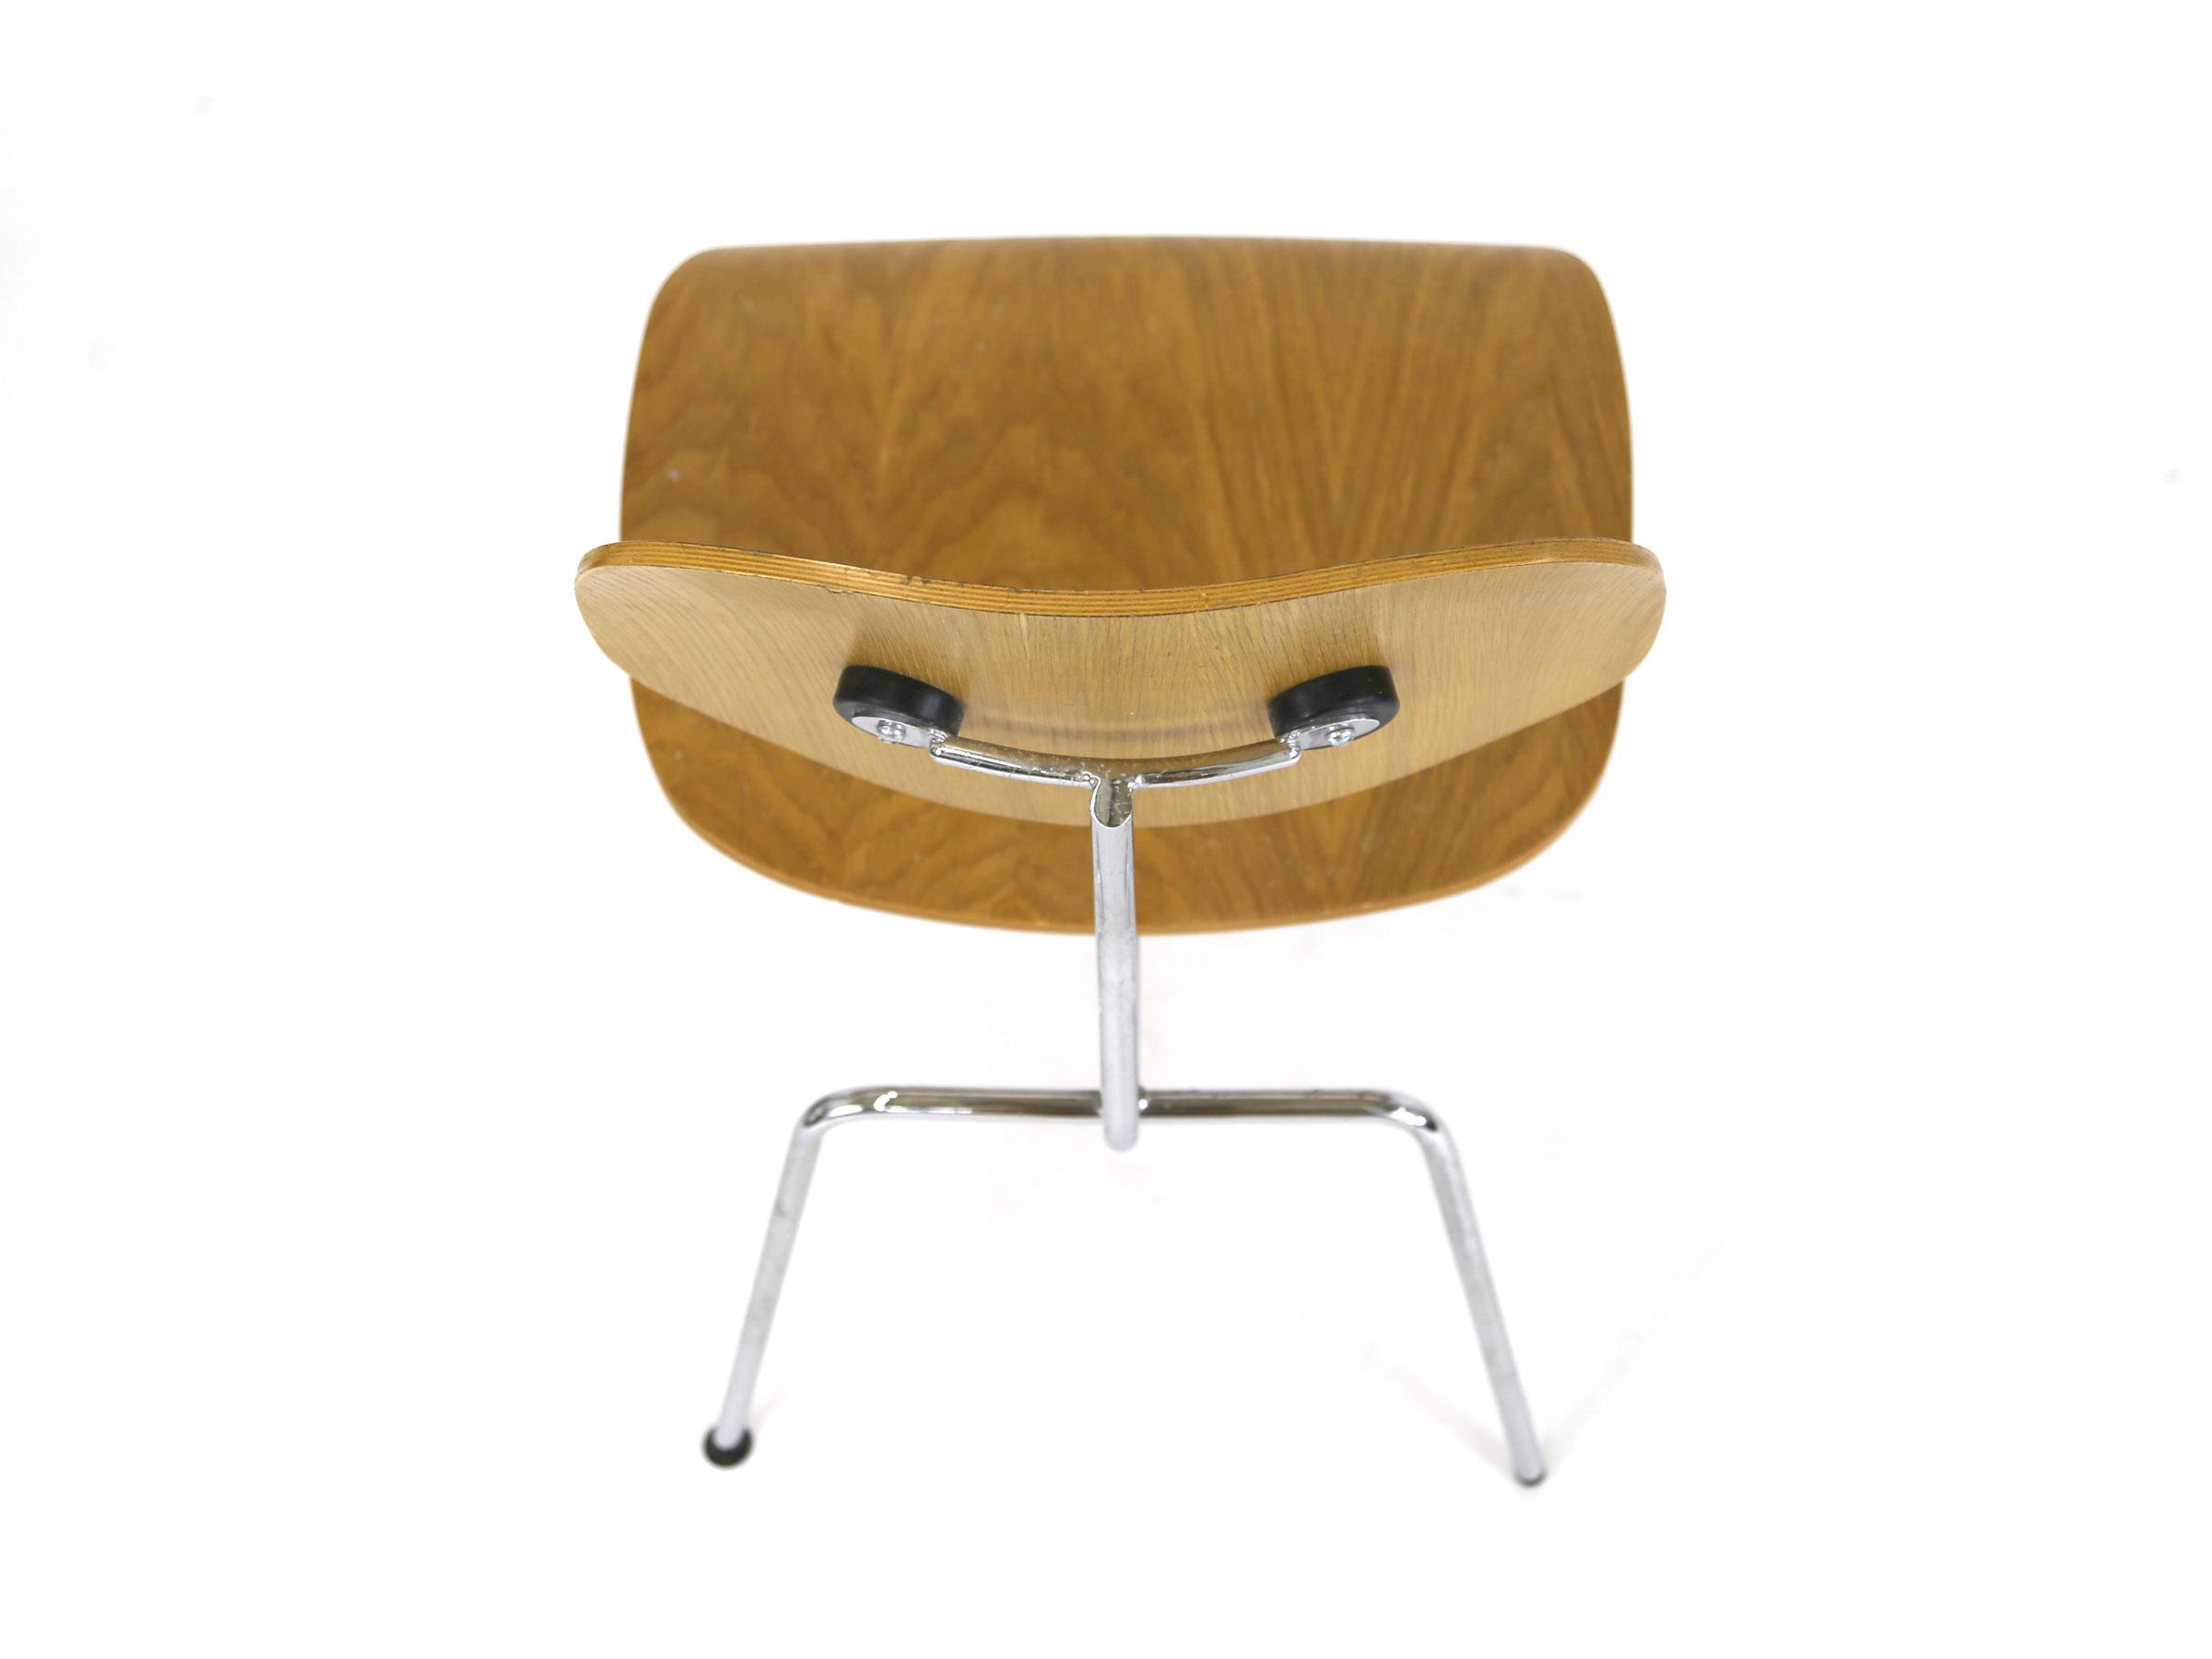 Vintage Eames Chair Molded Plywood Reproduction Chairish : 5c064aab 7511 4e5a 8d89 939ff7bd92bdaspectfitampwidth640ampheight640 from www.chairish.com size 640 x 640 jpeg 16kB